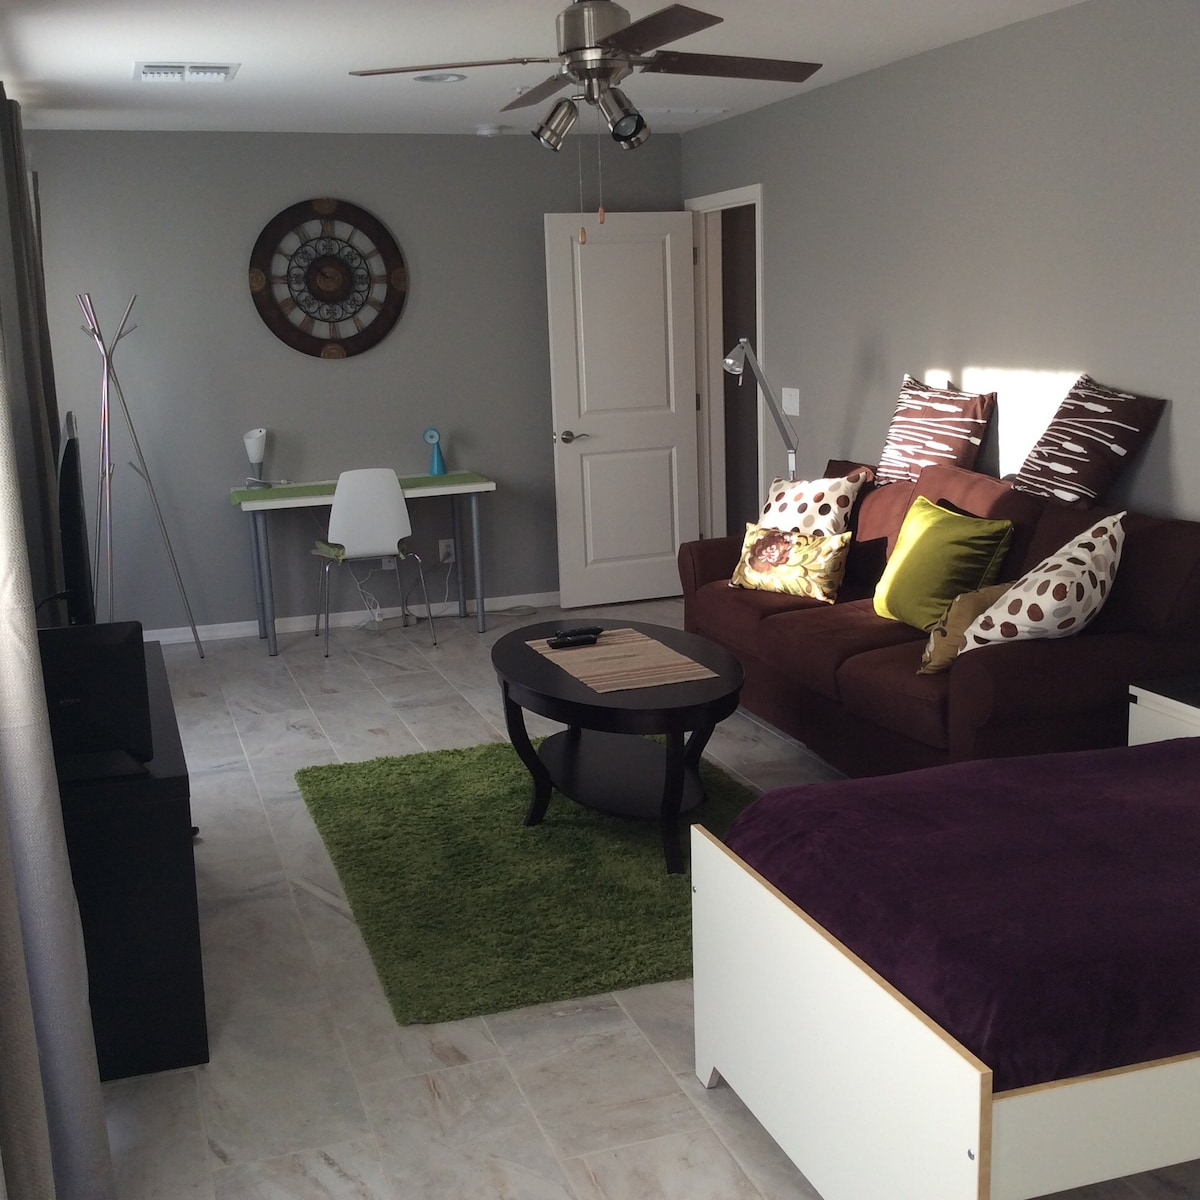 Affordable & Spacious near the I-10